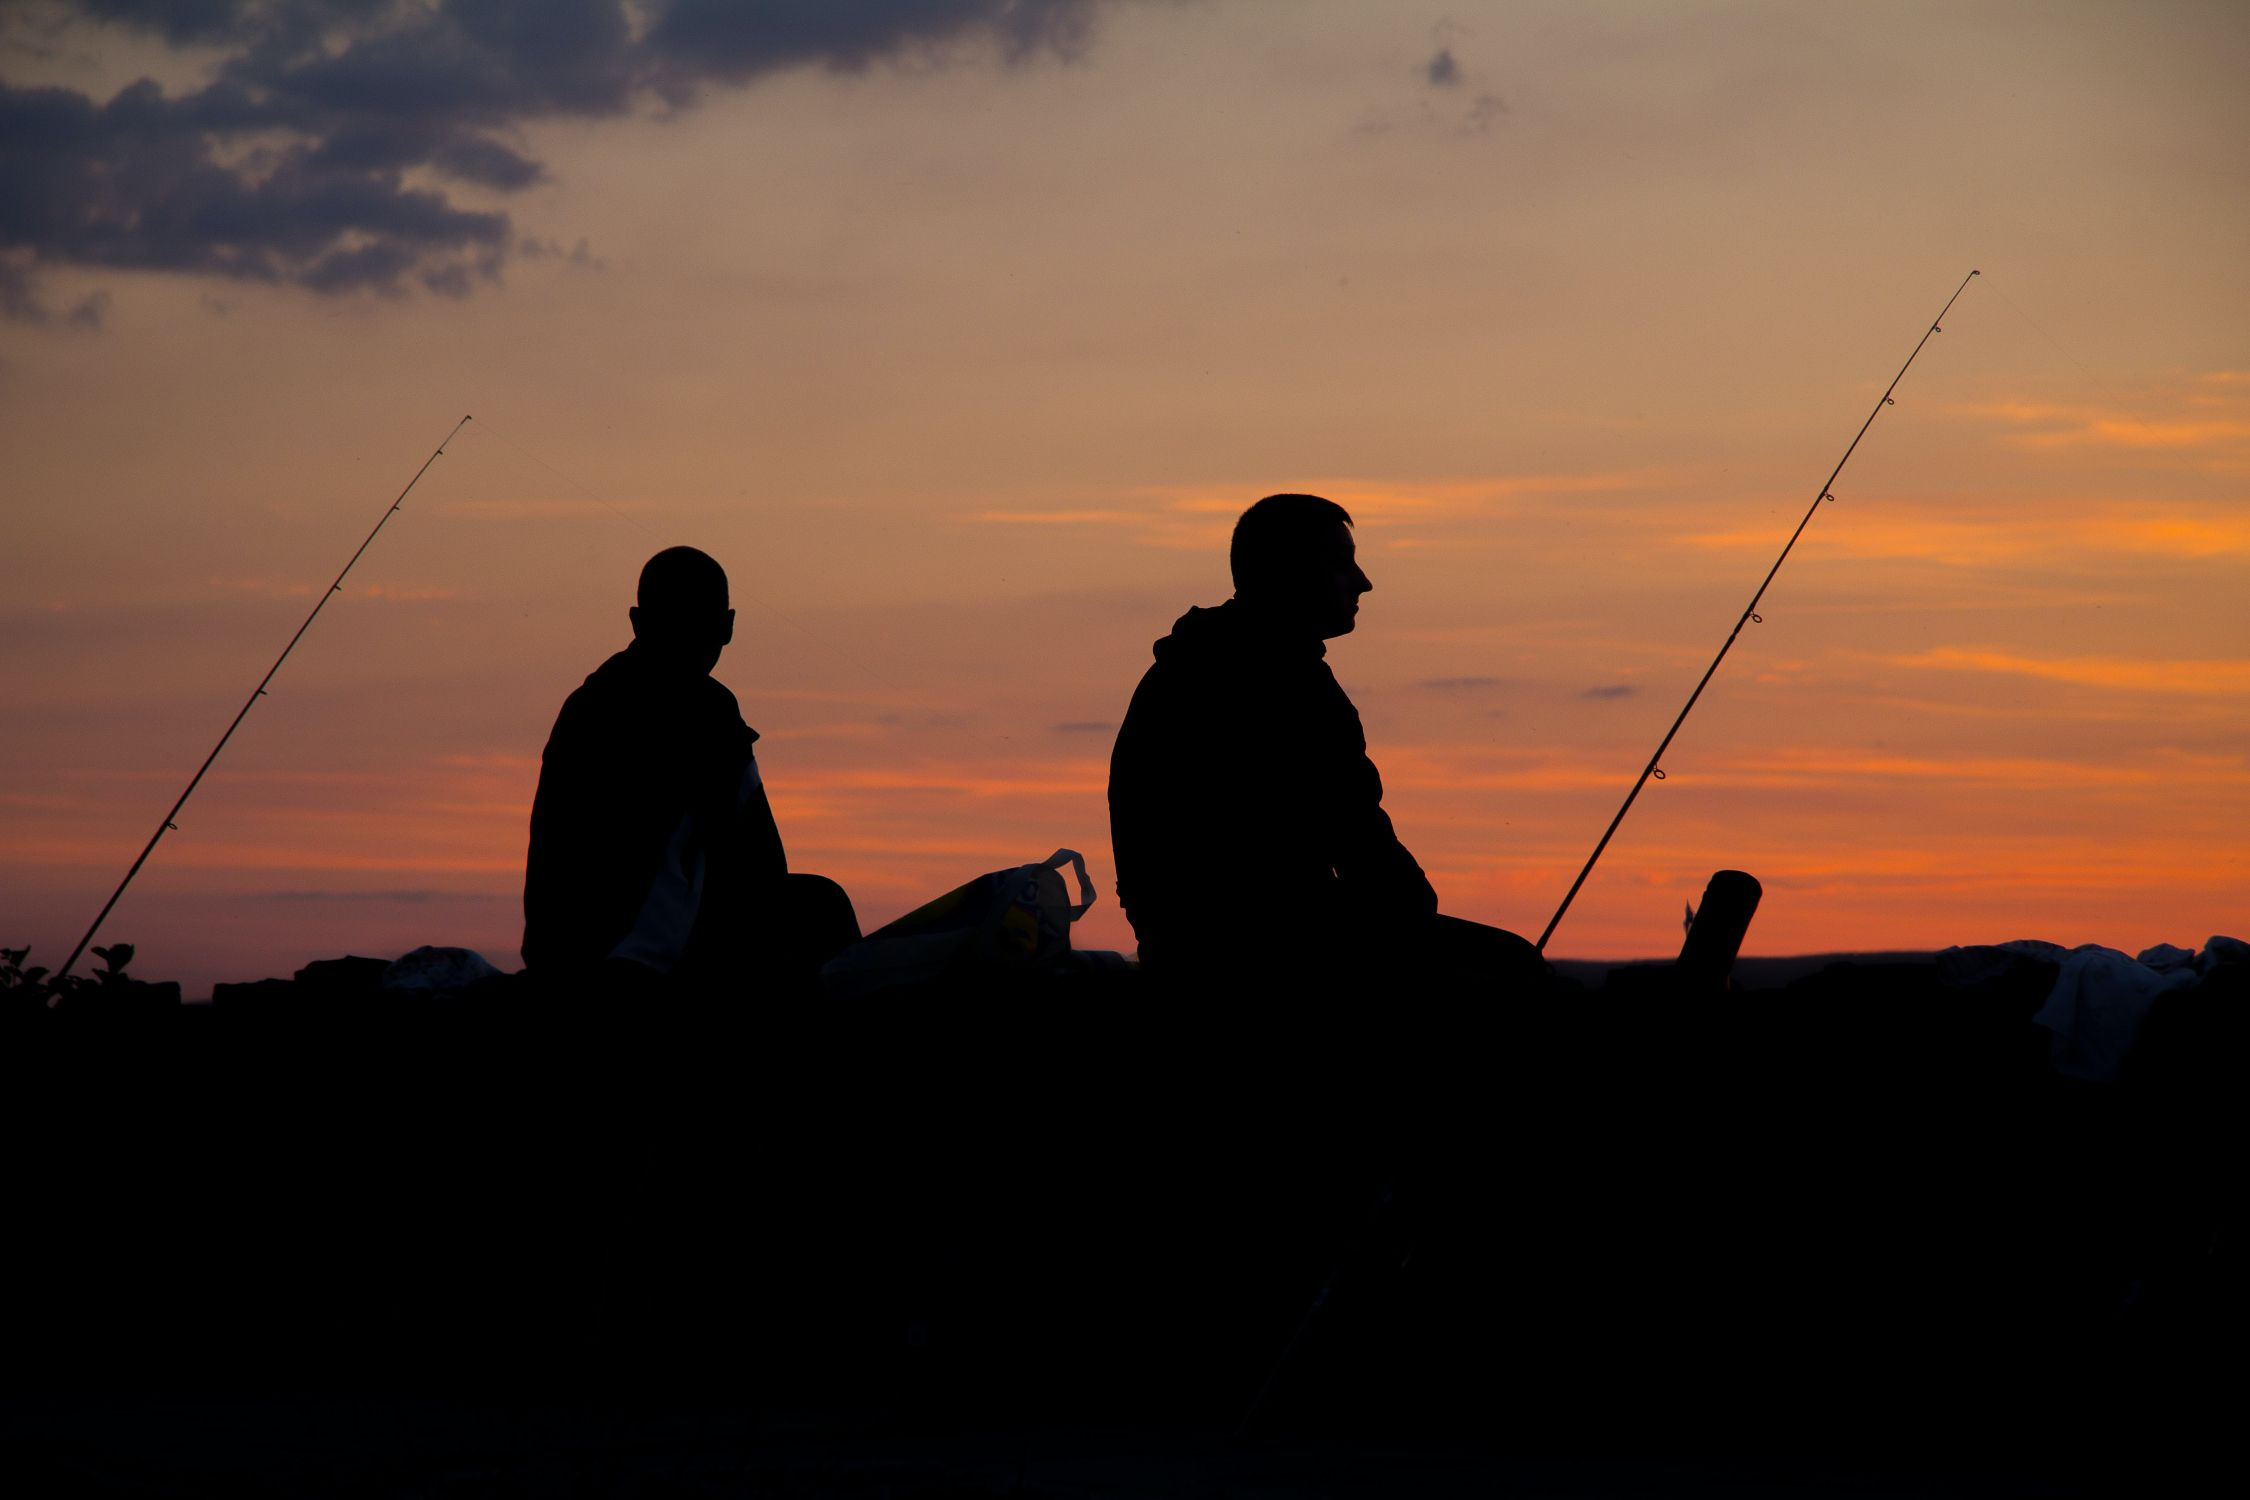 Silhouette of two men fishing at sunset